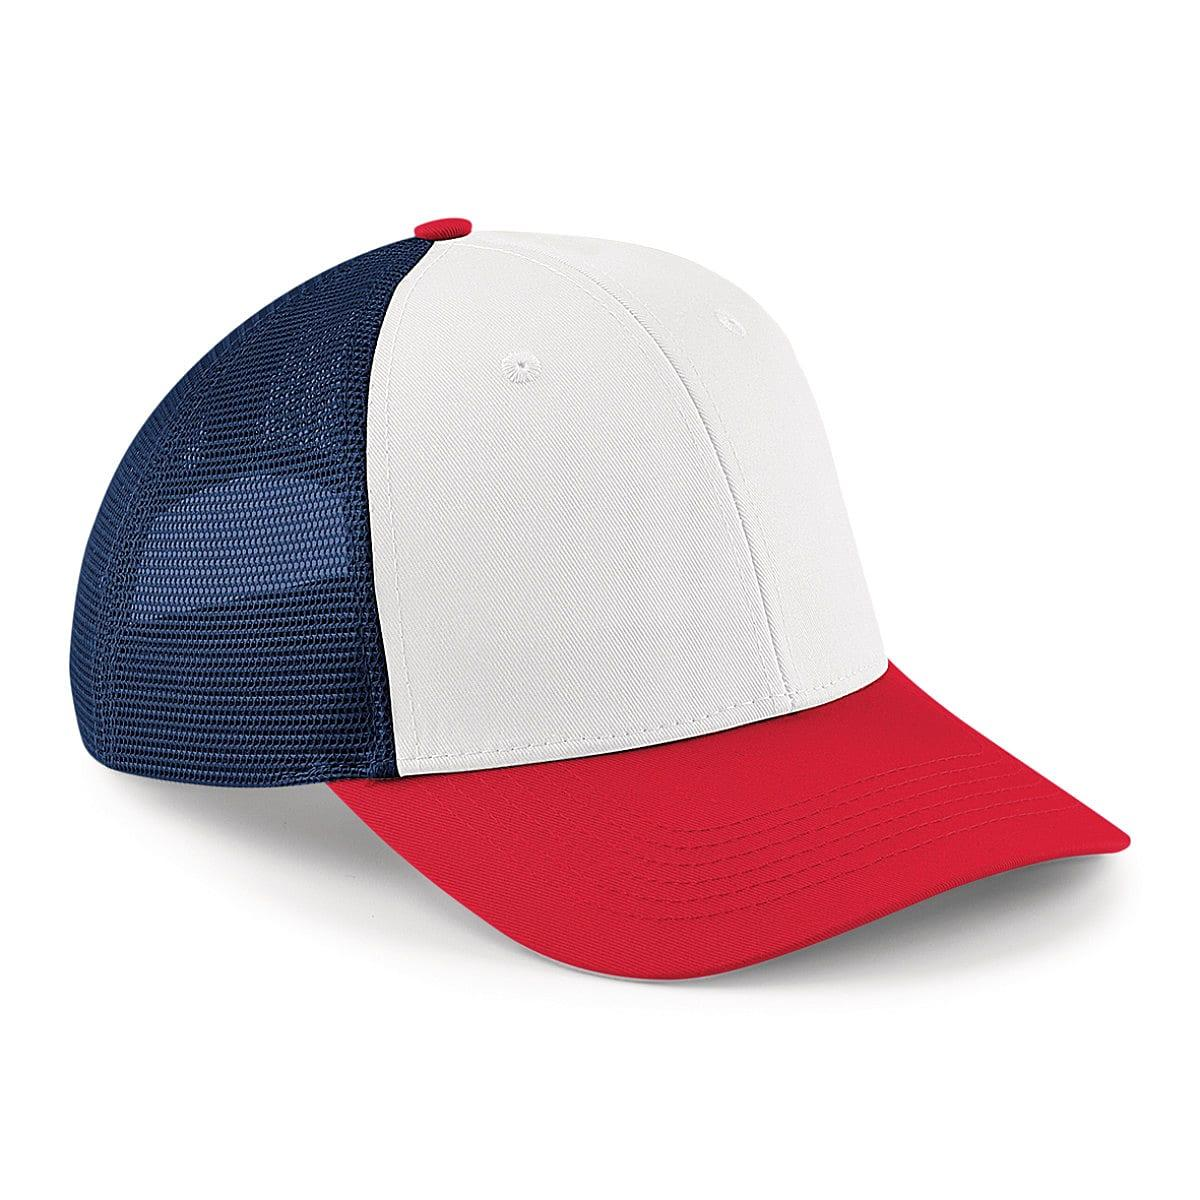 Beechfield 6 Panel Snapback Trucker Cap in French Navy / Classic Red / White (Product Code: B647)